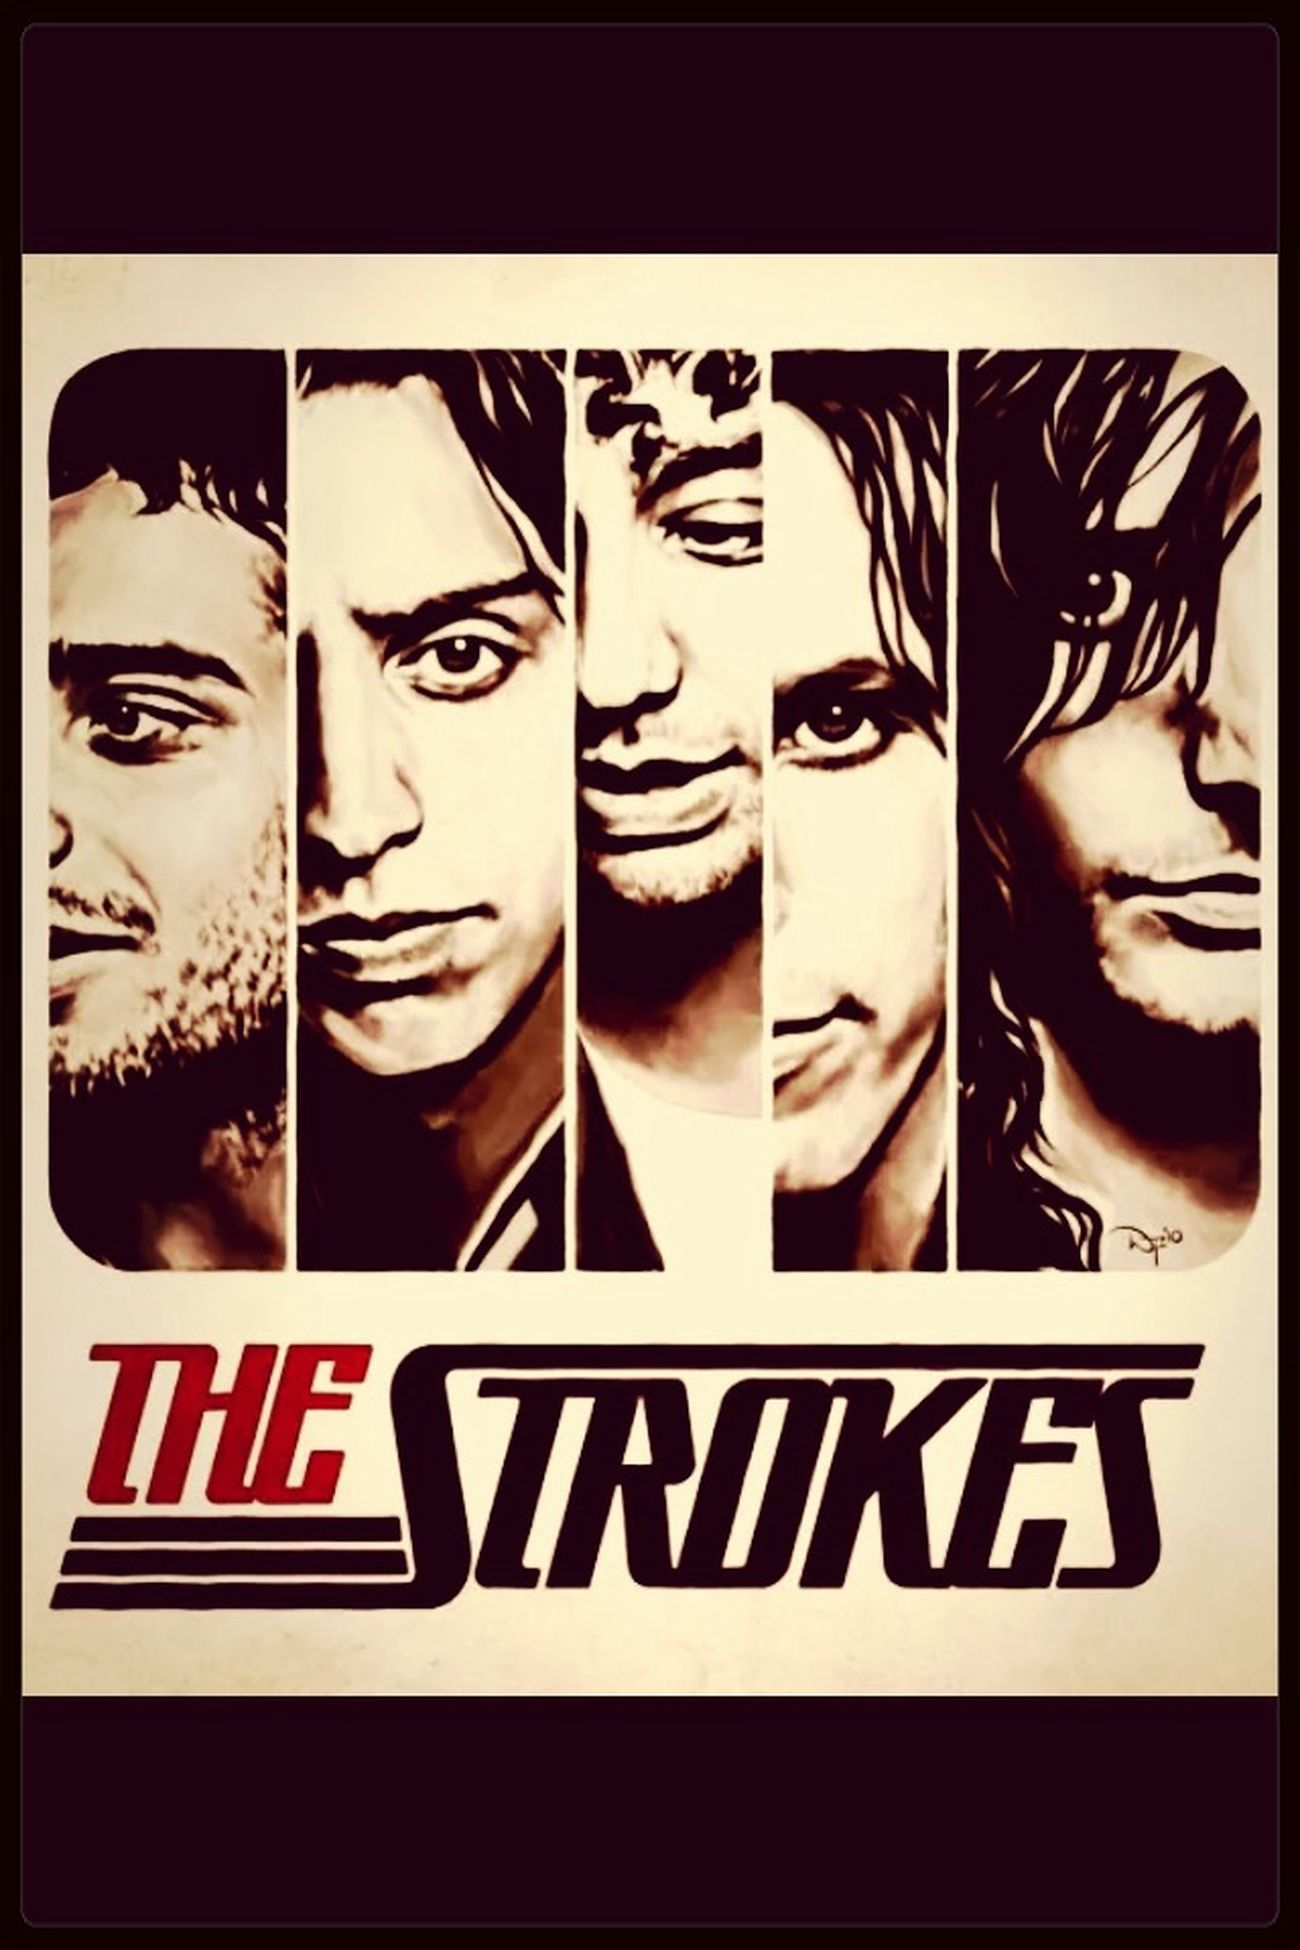 The Strokes ❤️❤️ Bands Music My Favourite Band.